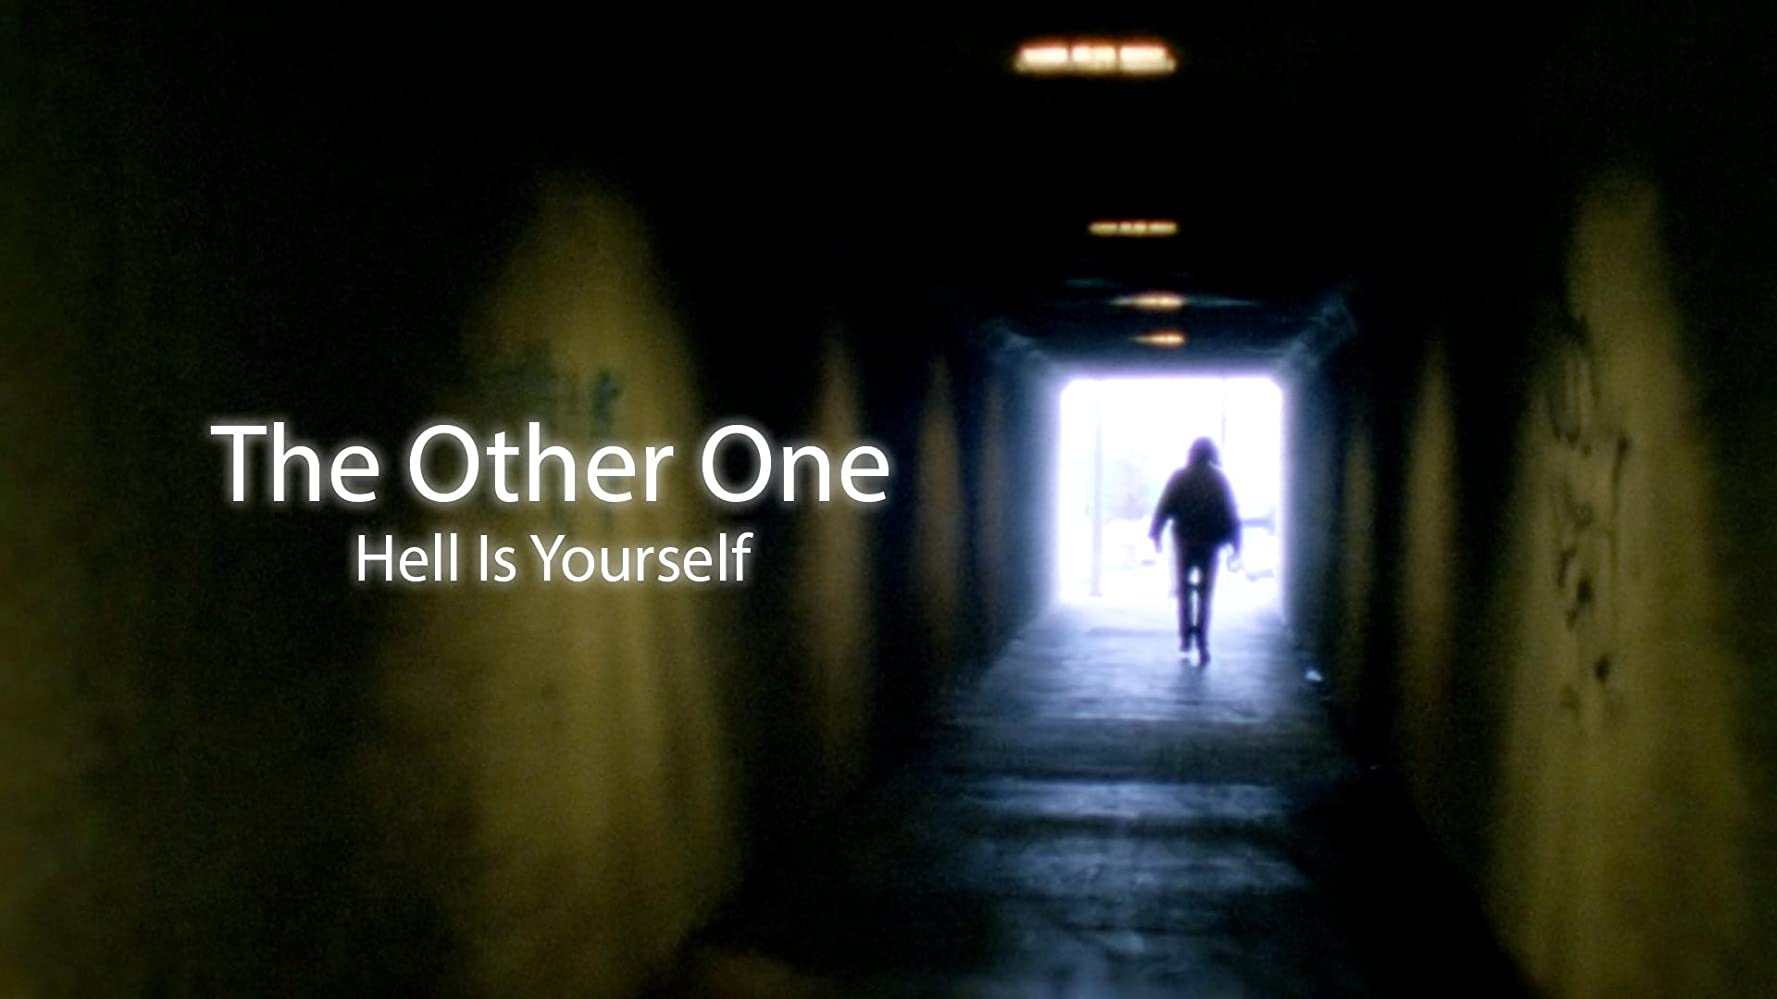 The Other One 2017 DVDRip x264 300MB